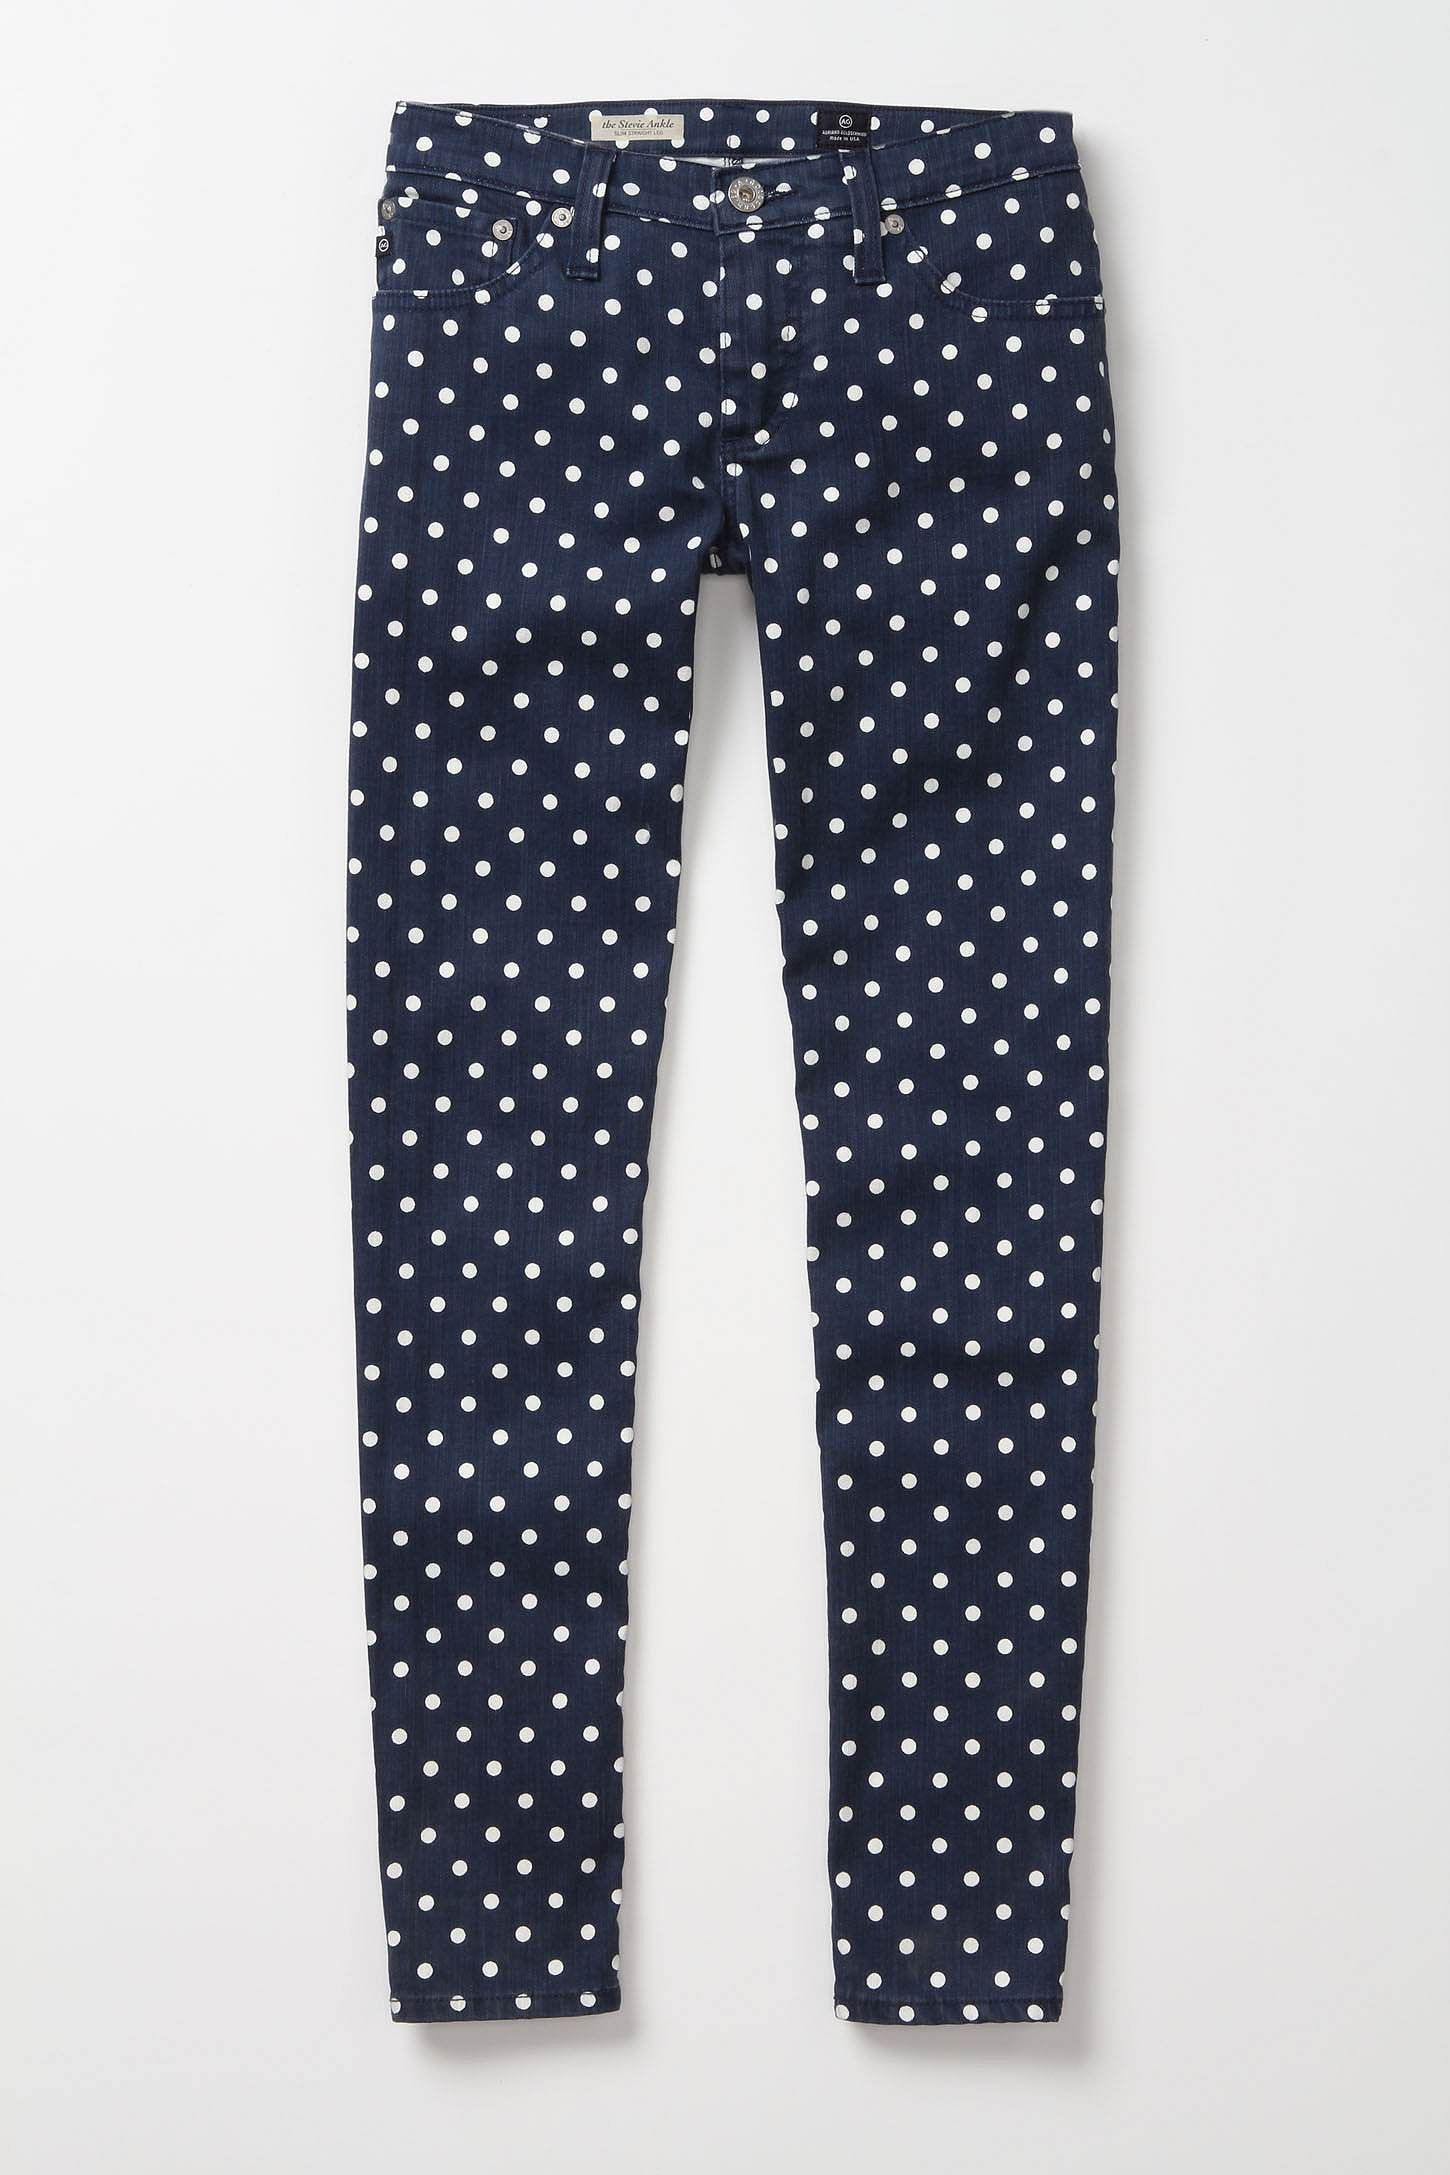 polka dot pants: anthropologie